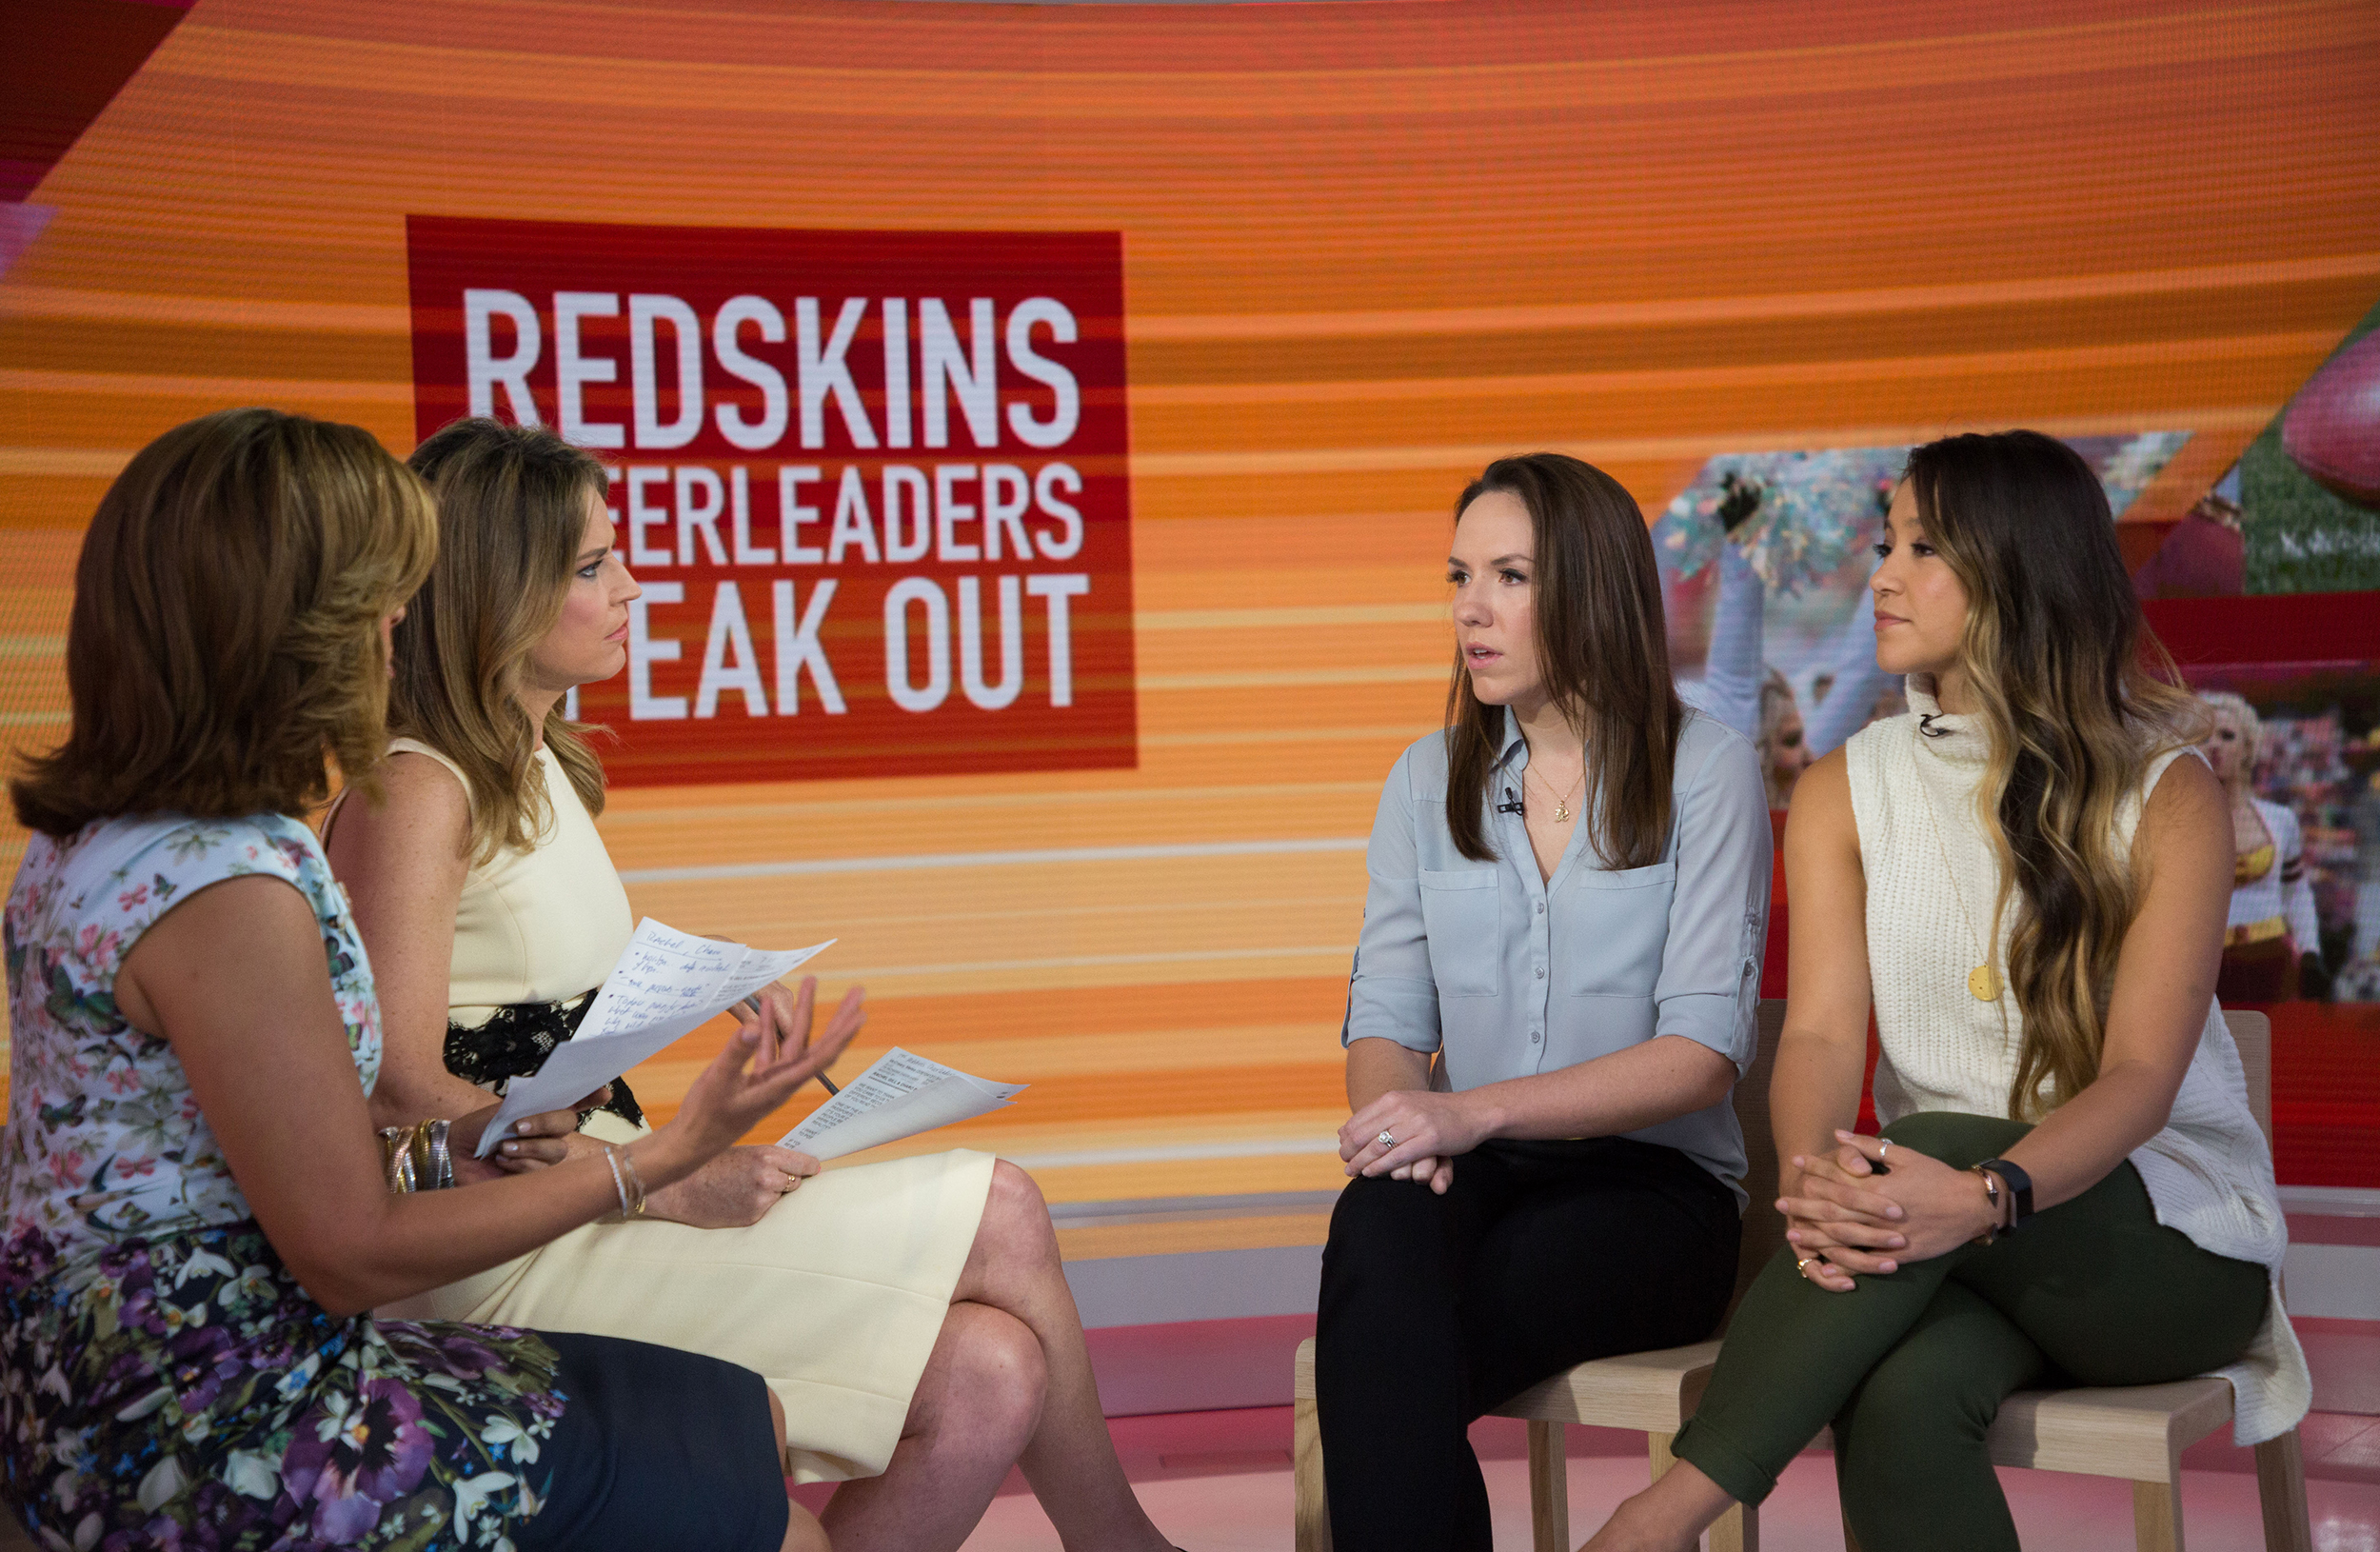 Washington Redskins cheerleaders open up on TODAY about photo shoot